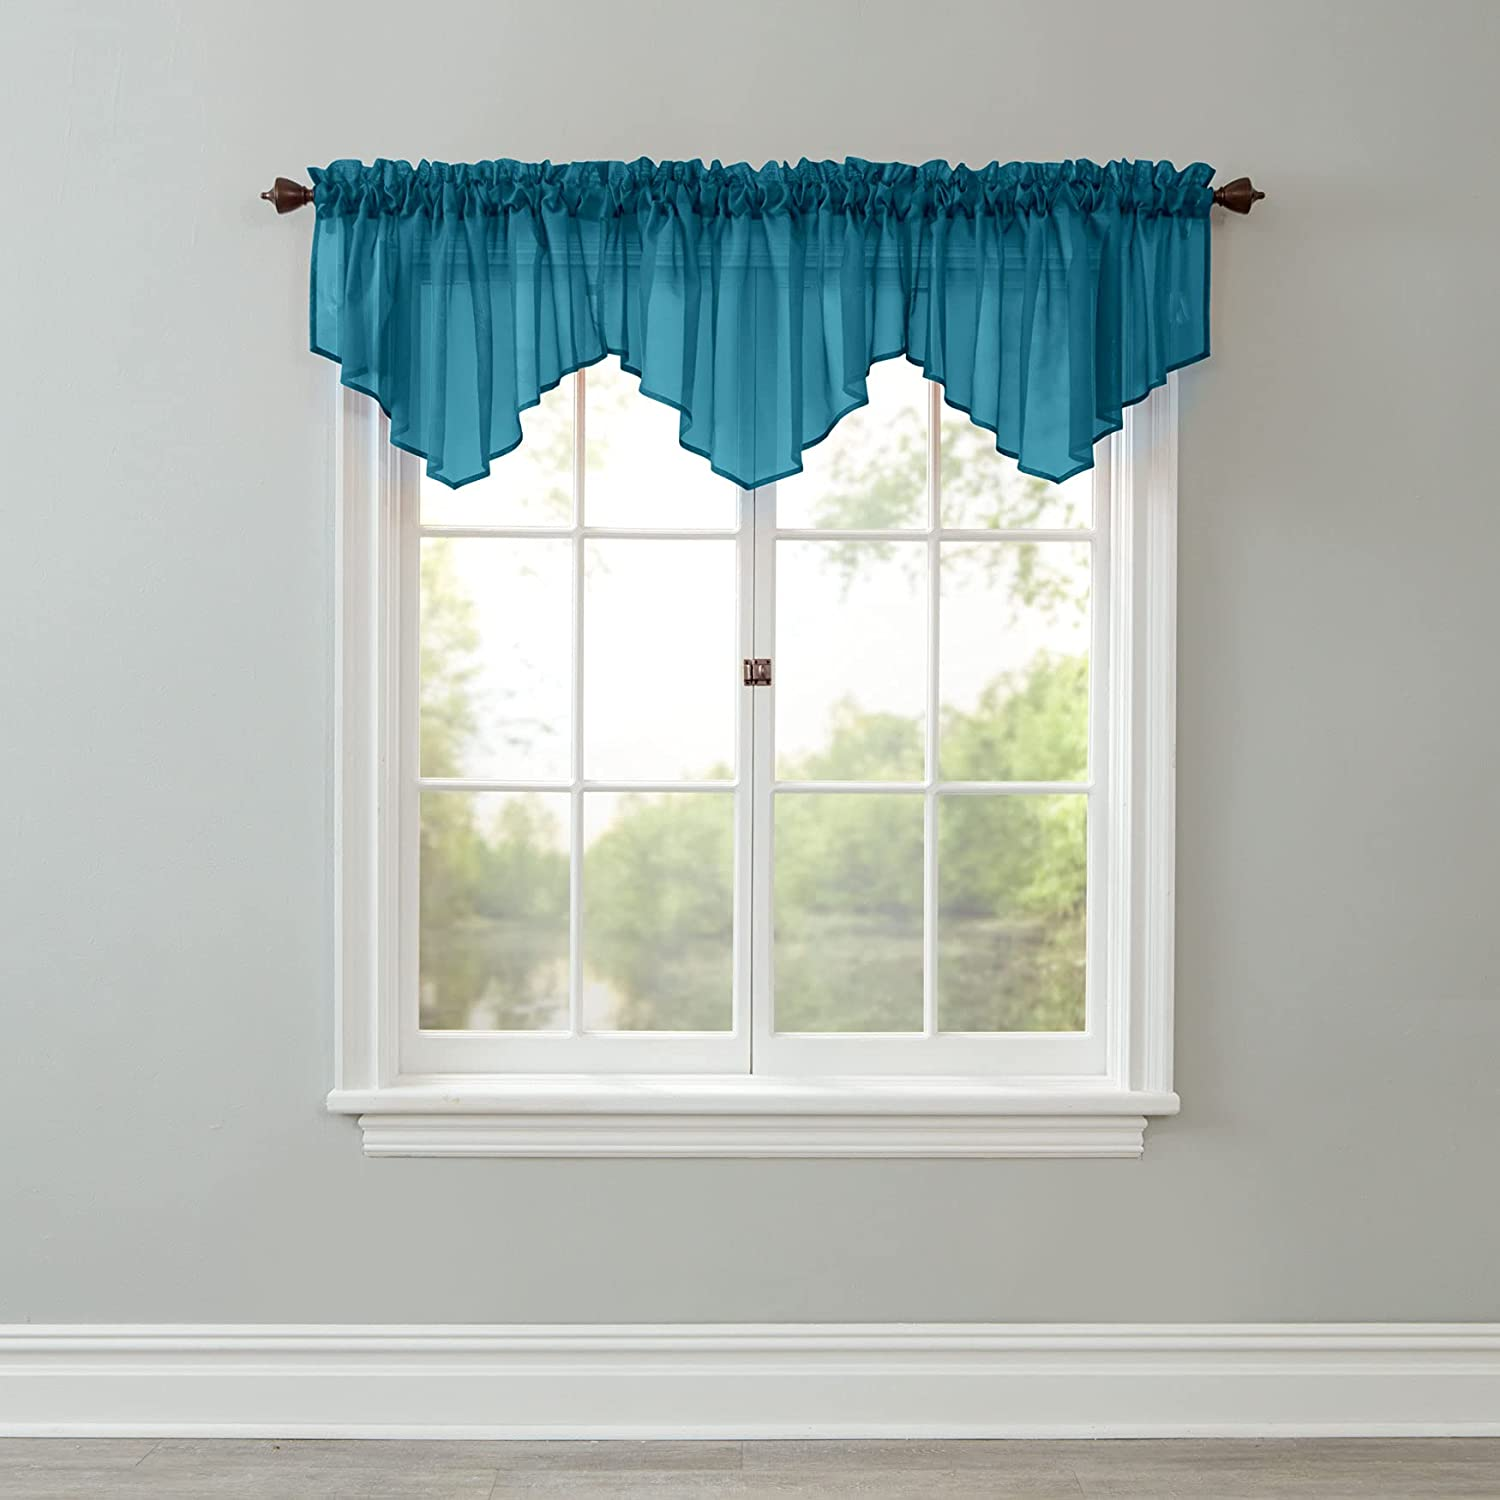 Amazon Com Brylanehome Sheer Voile Scarf Valance 40i W 144il Dark Turquoise Home Kitchen